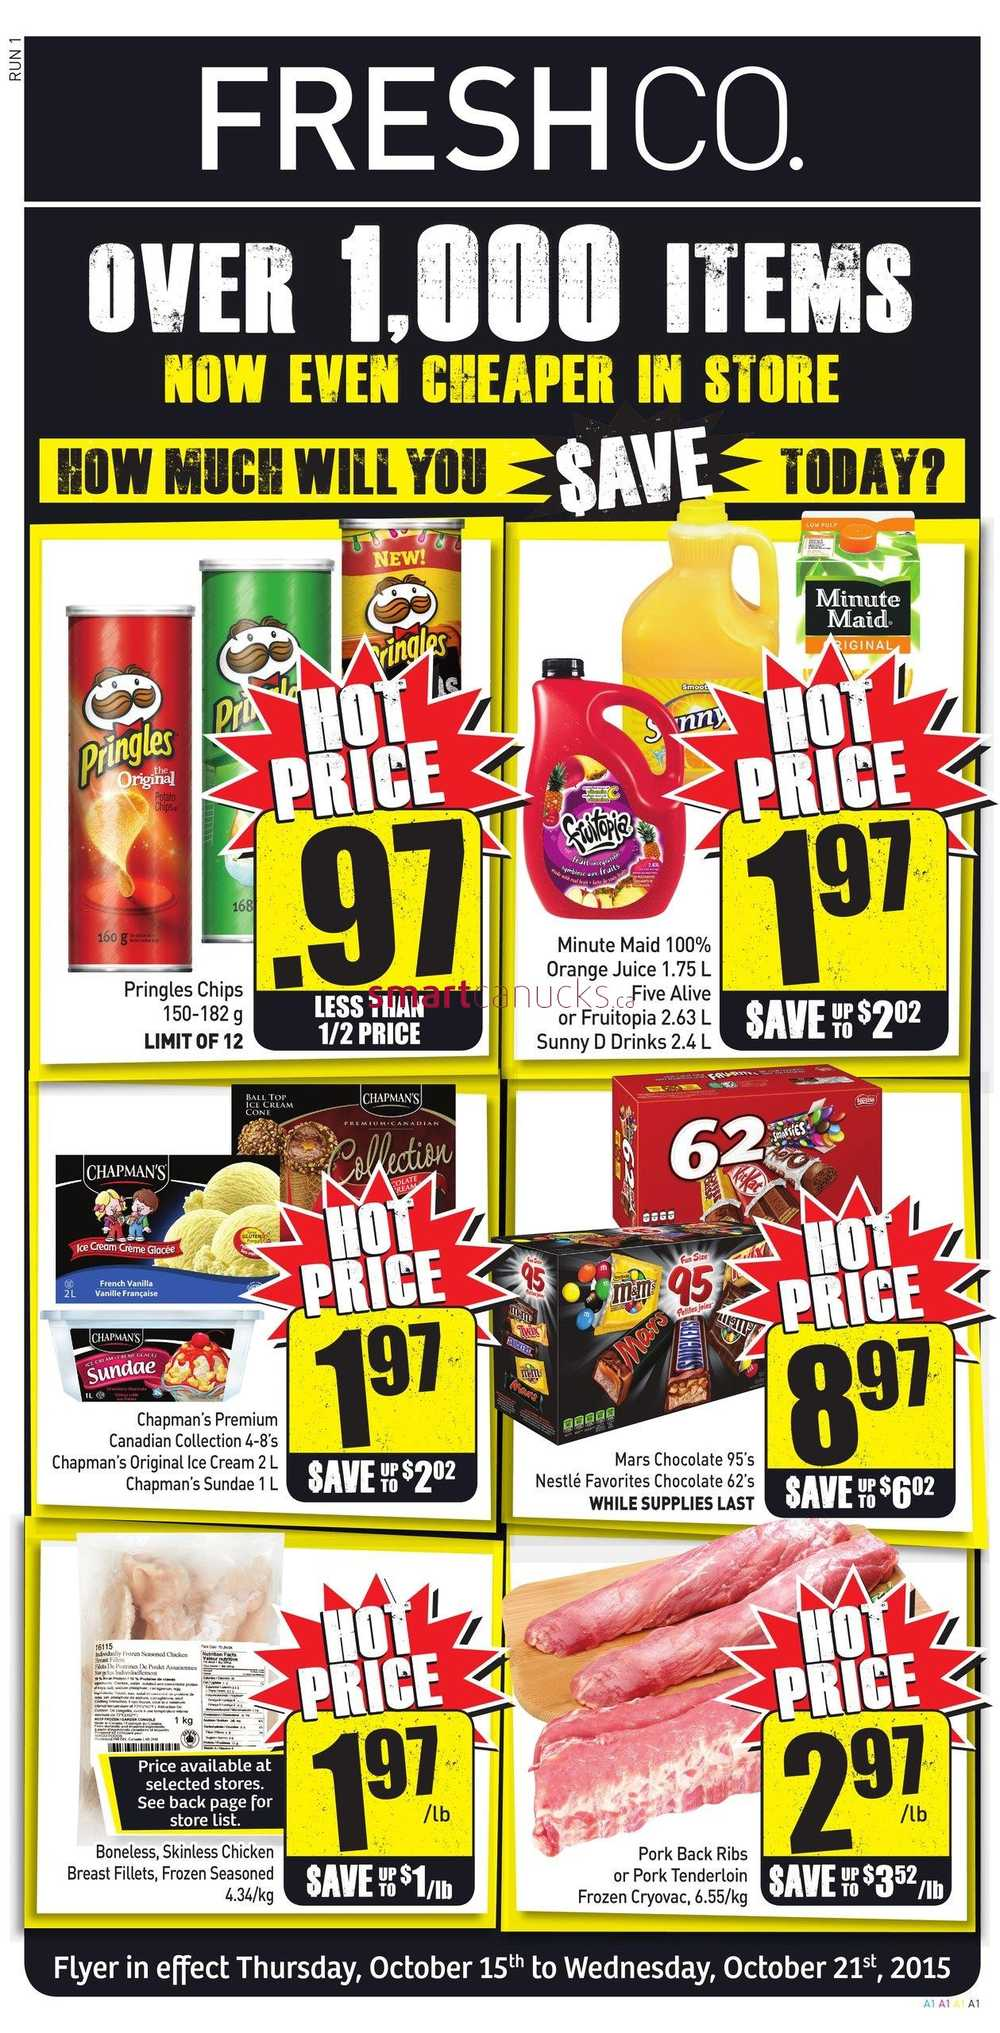 FreshCo Canada Weekly Flyers: Thursday, October 15 To